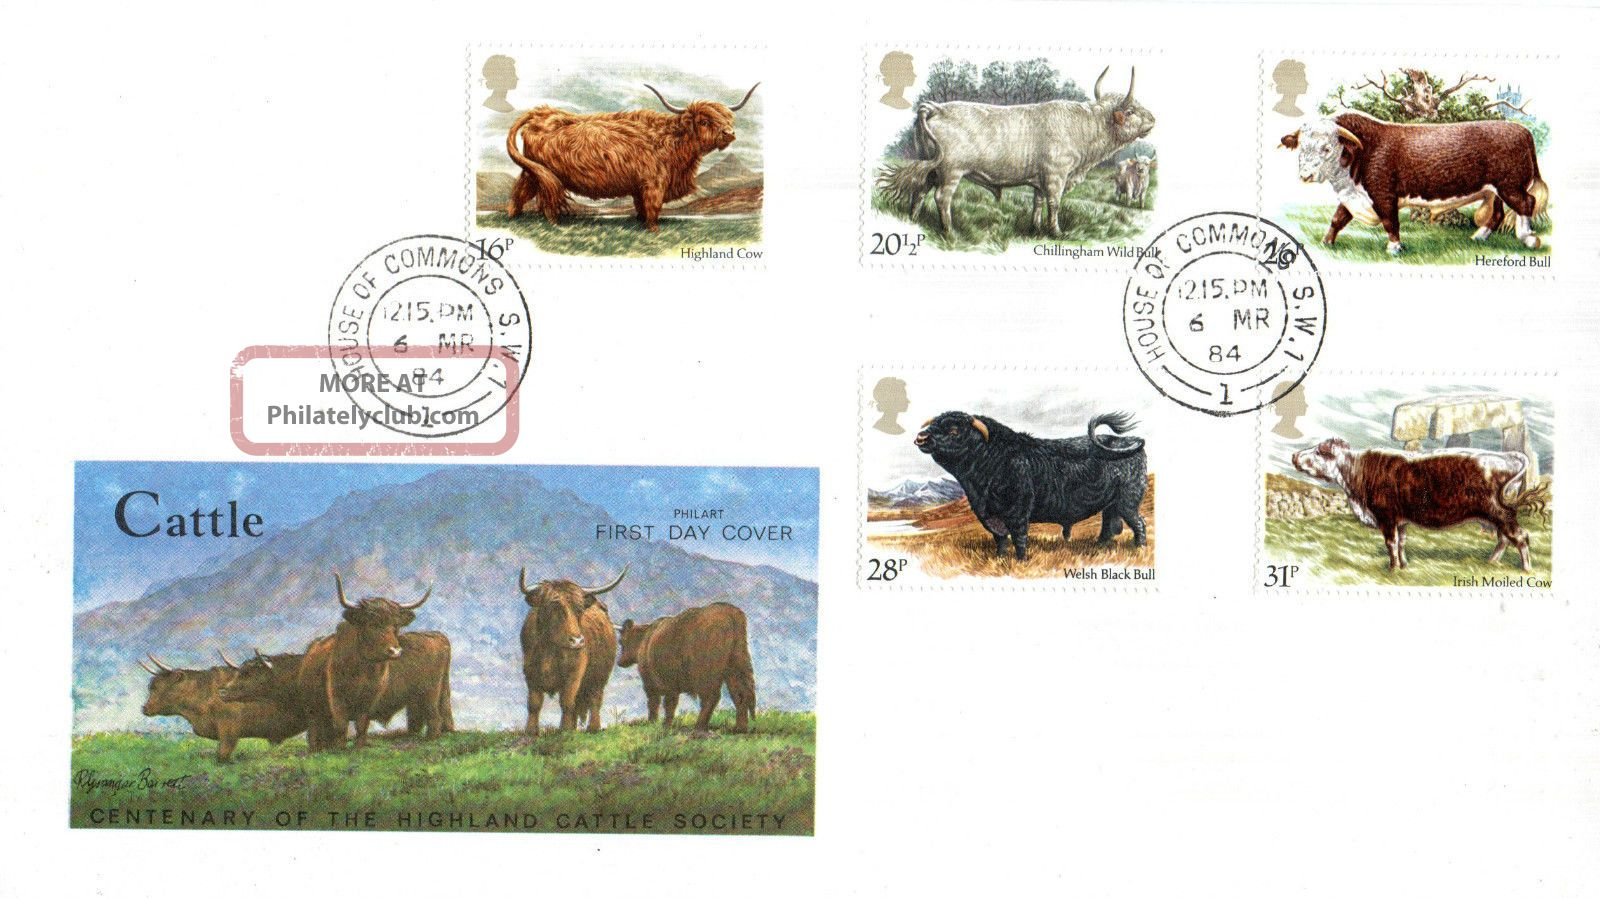 6 March 1984 British Cattle Philart First Day Cover House Of Commons Sw1 Cds Animal Kingdom photo